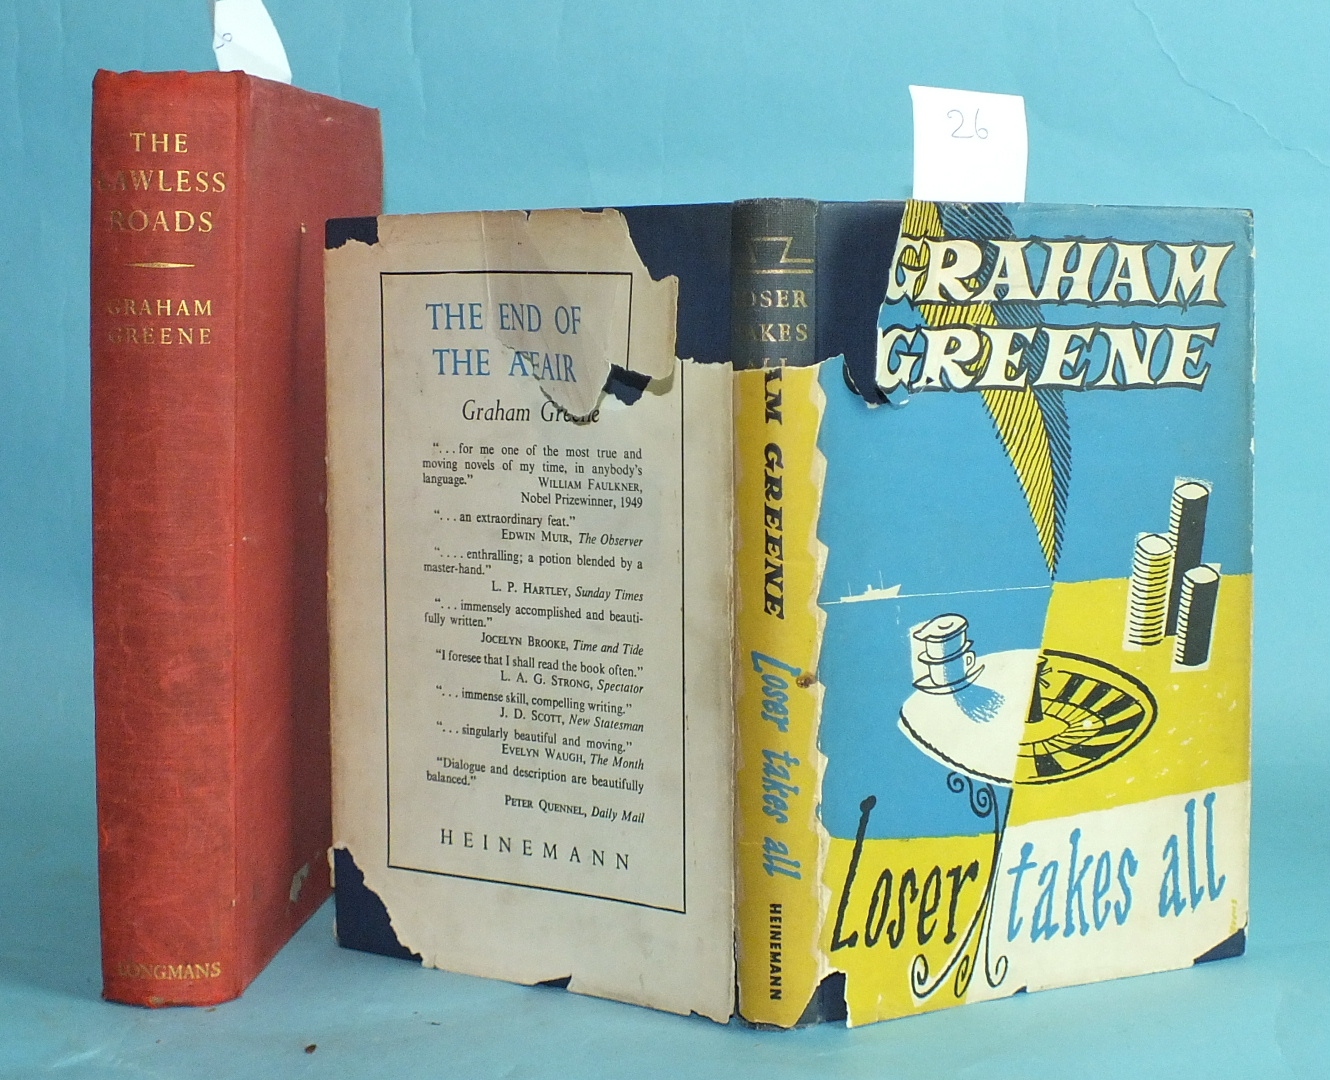 Greene (Graham), The Lawless Roads, 1st Edn, 1st State, no dwrp, red cloth with gold lettering, 8vo,